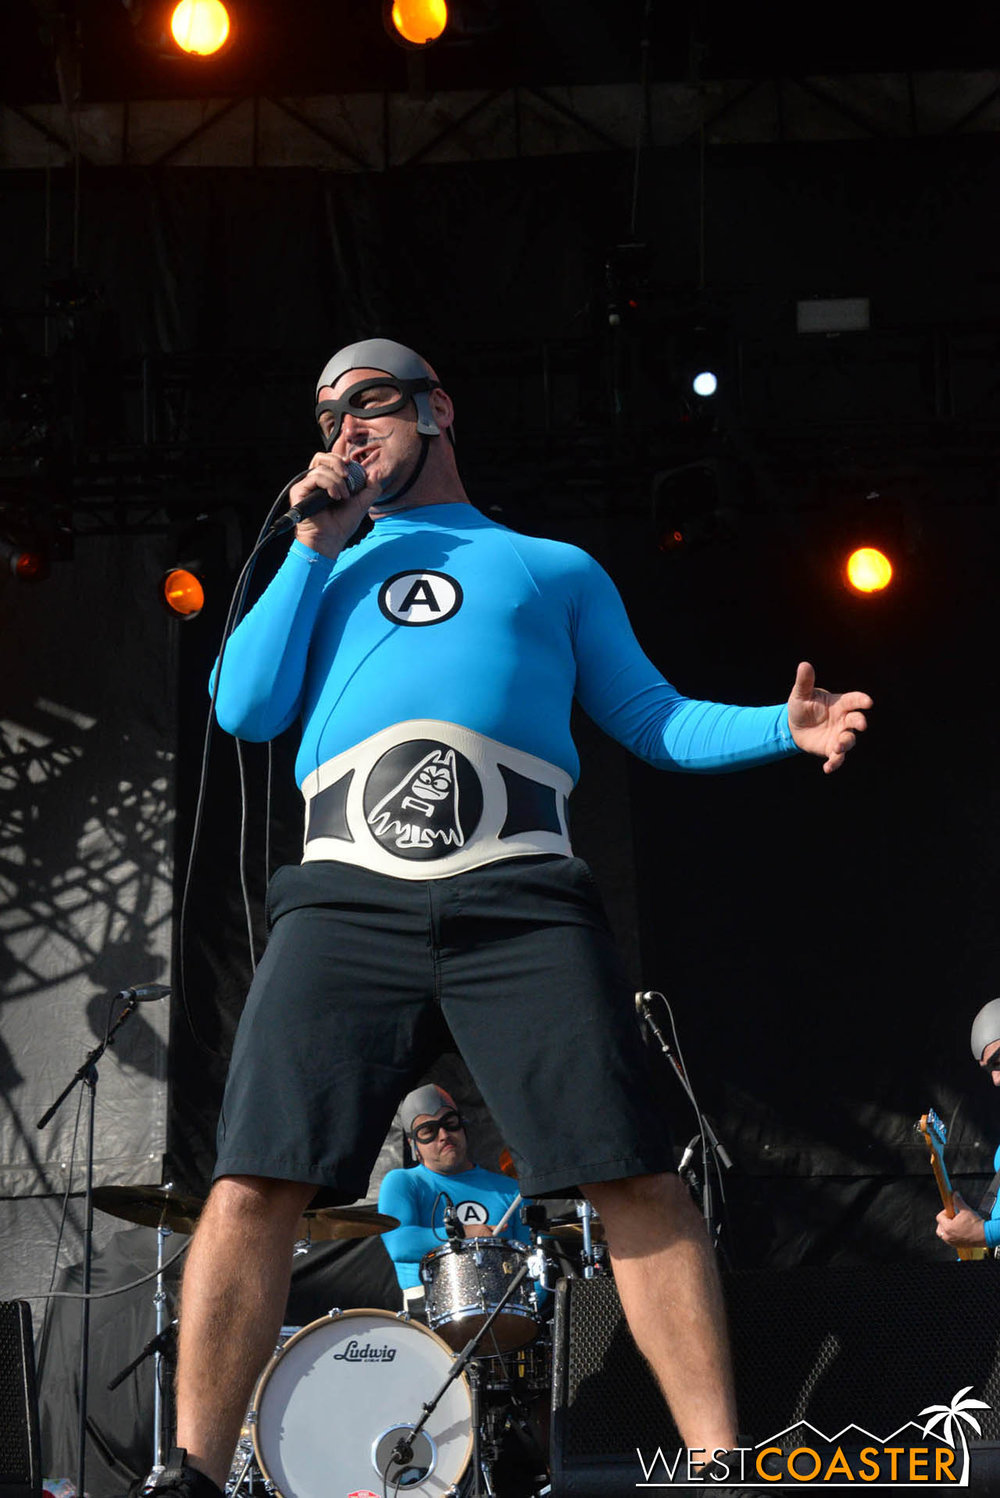 B2tB-18_0504-D-Music-3-Aquabats-0004.jpg